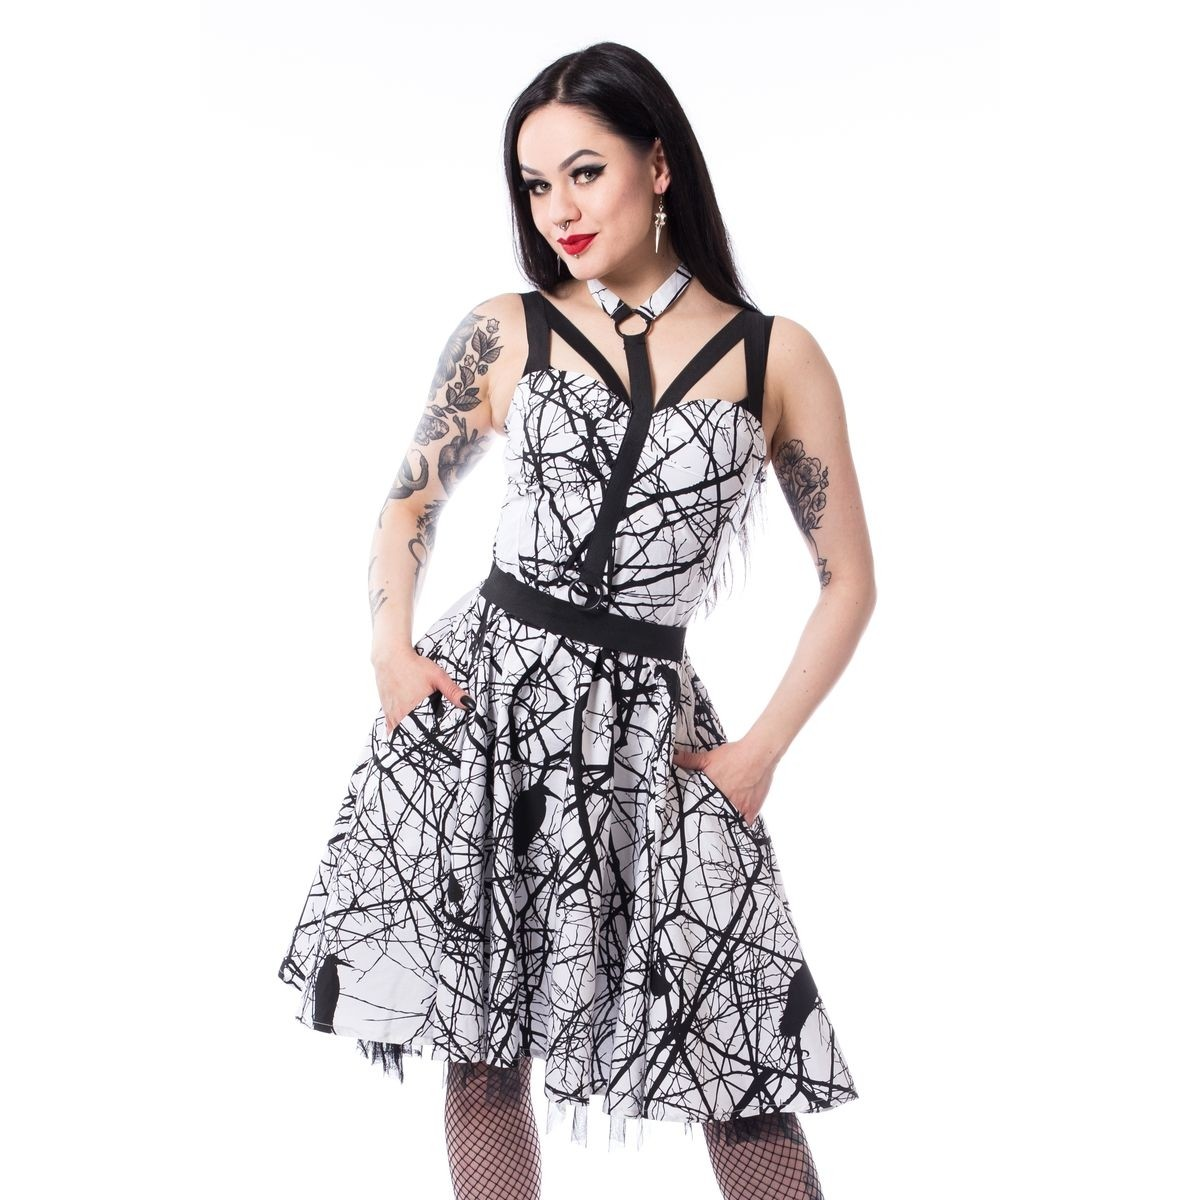 VIXXSIN - Crow Dress Ladies White/Black *NEW IN-a*